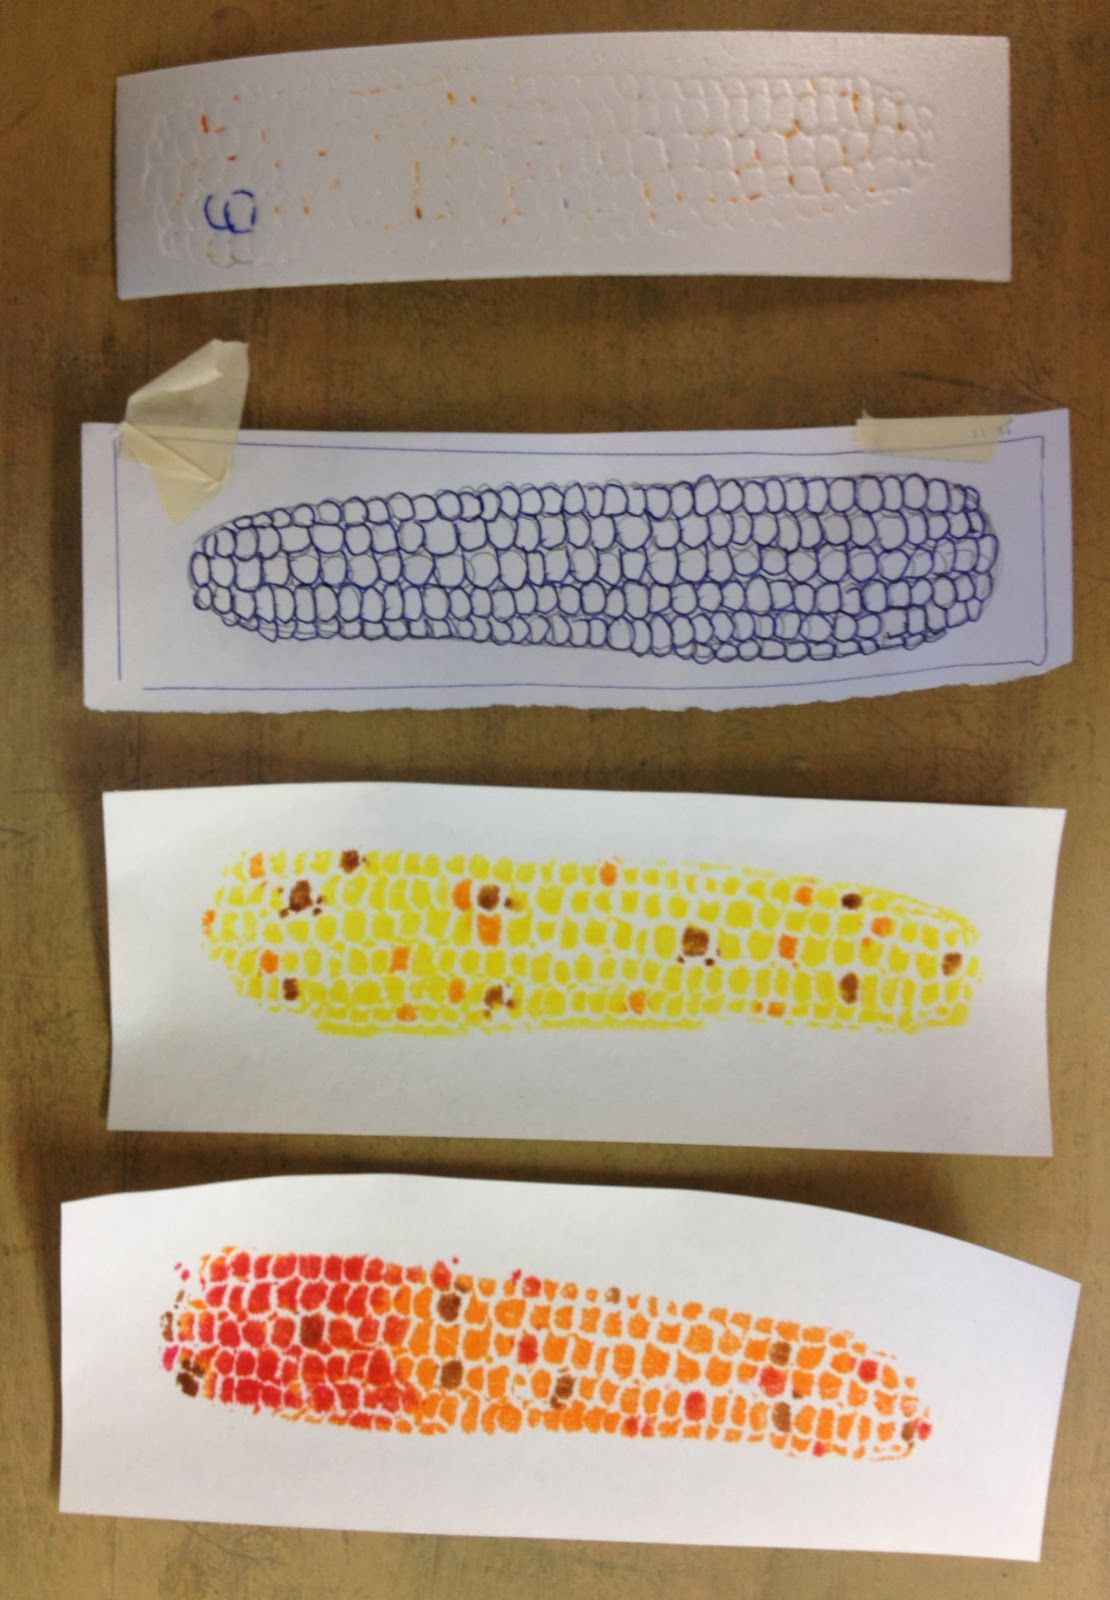 New Lesson For Fourth Grade Will Combine Pop Art Printmaking And Corn Will Be Great For Using